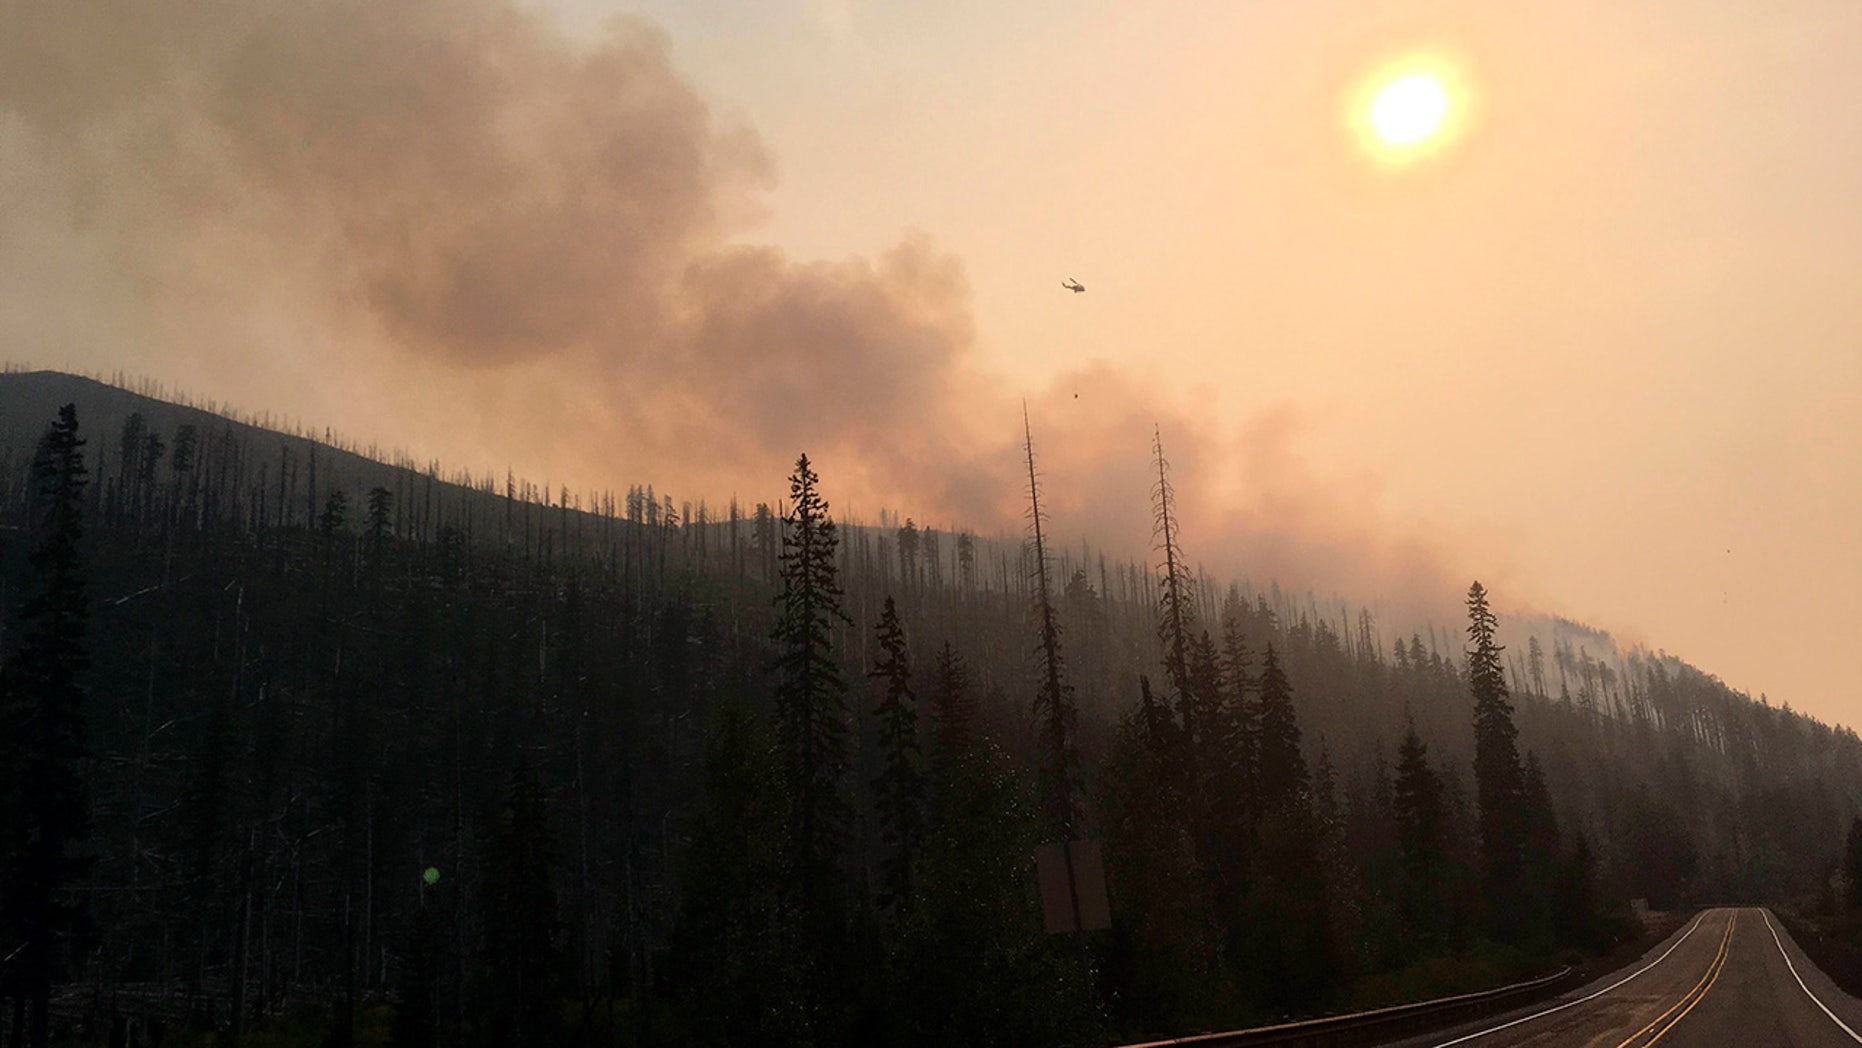 The smoke from massive wildfires hangs like fog over large parts of the  U.S. West, an irritating haze causing health concerns, forcing sports teams  to ...